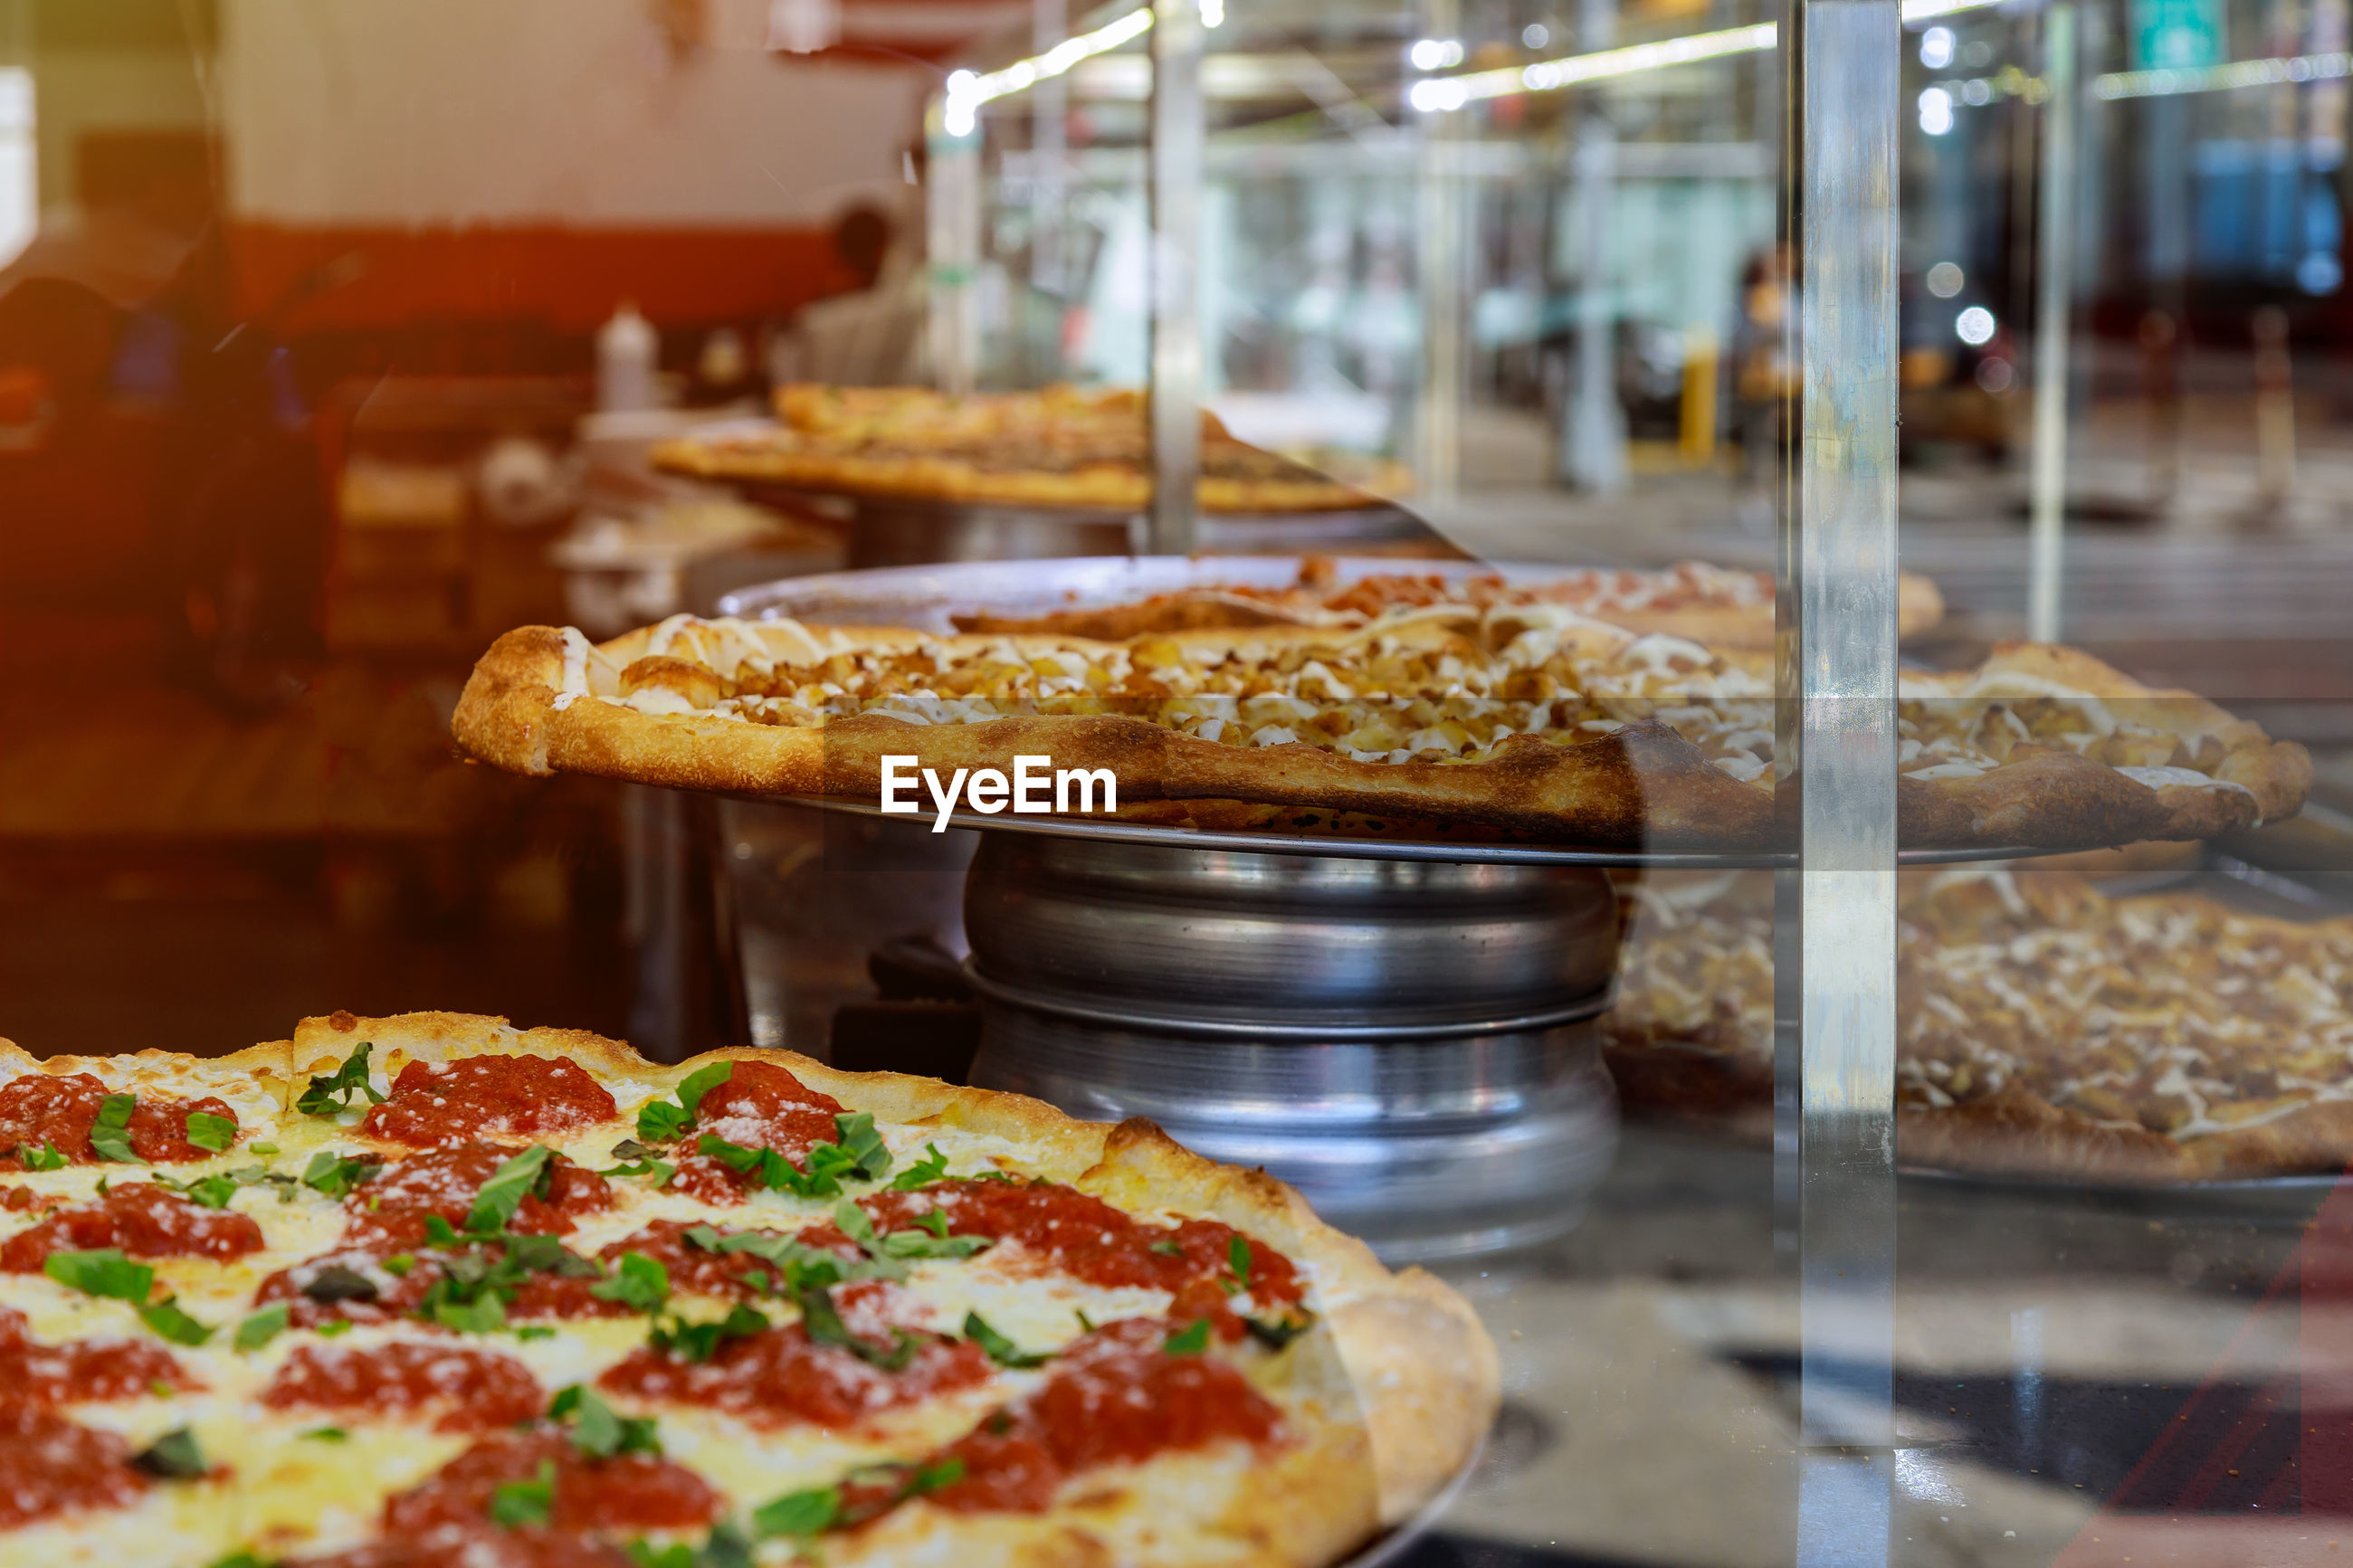 Close-up of pizza in kitchen at restaurant